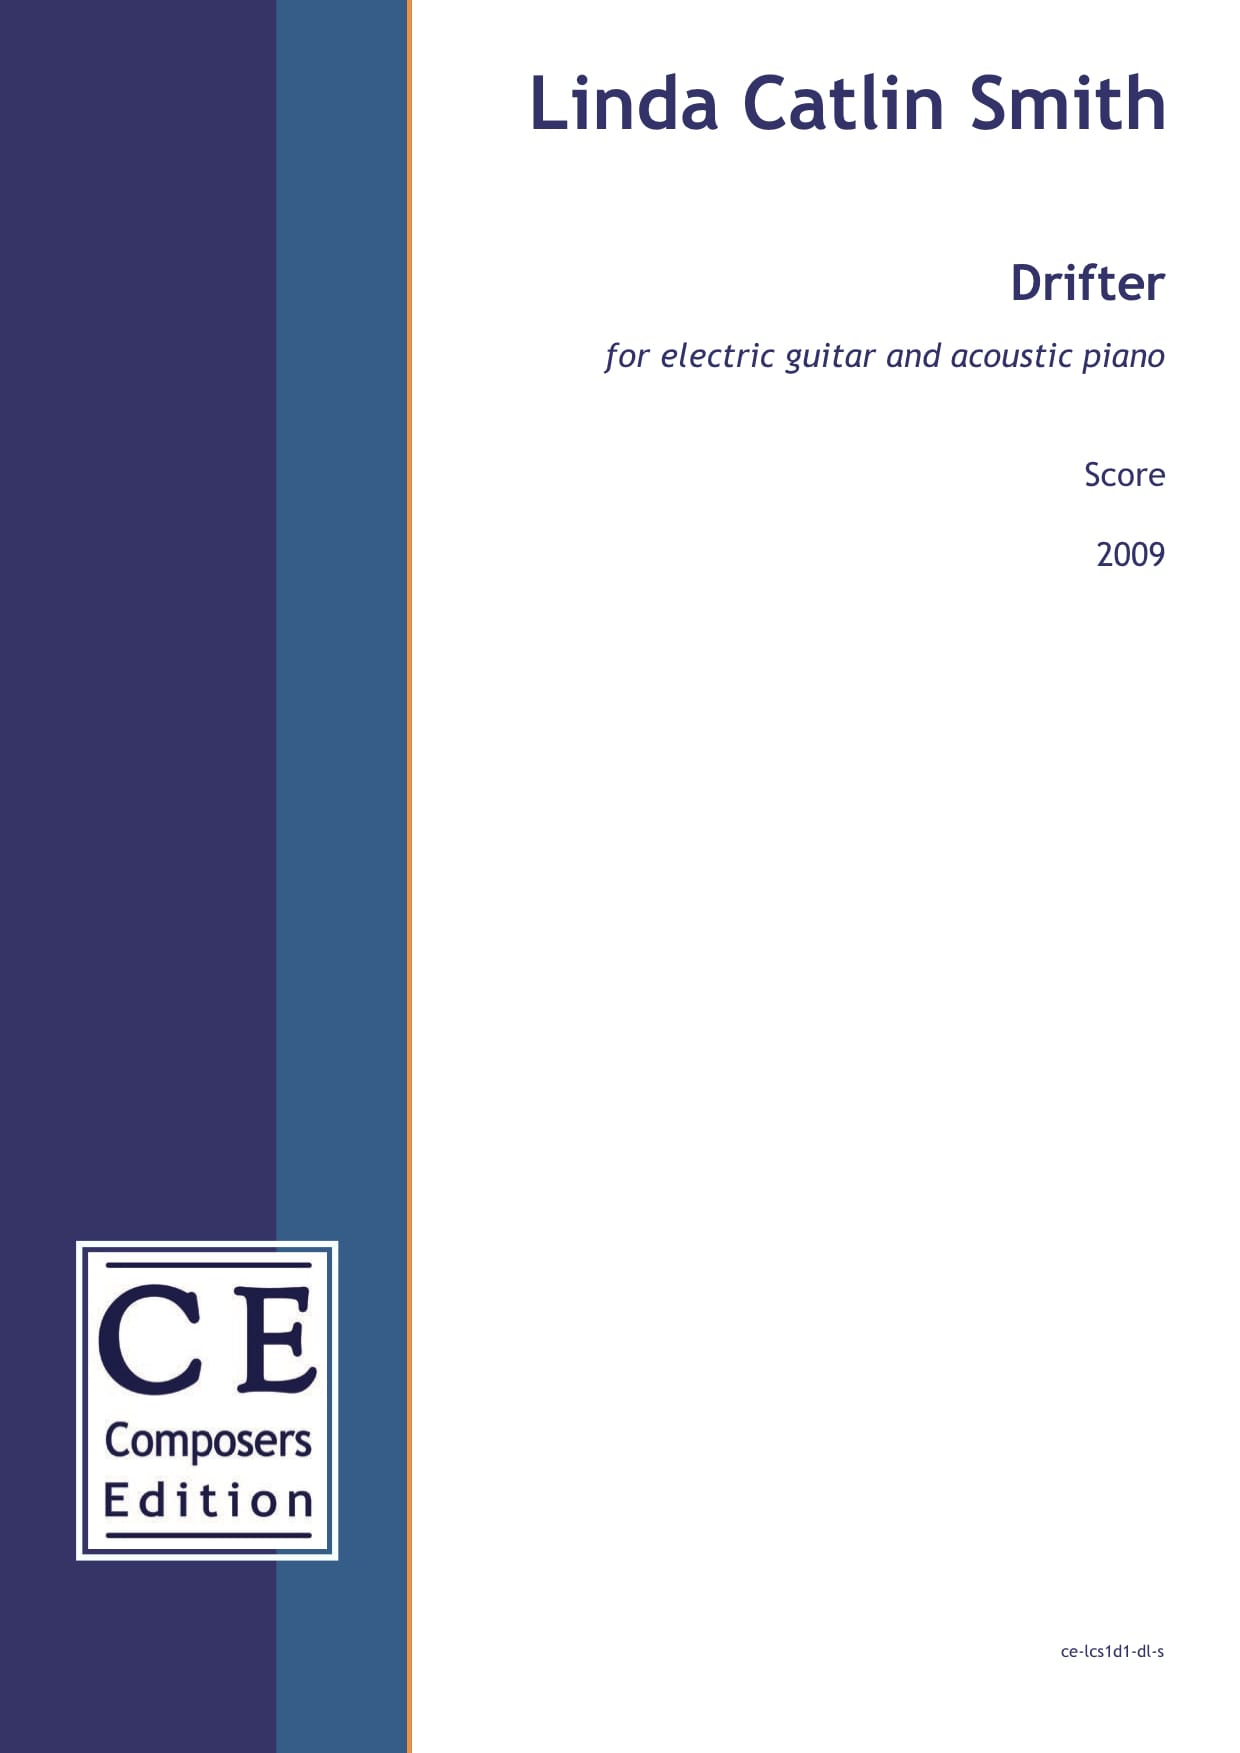 Linda Catlin Smith: Drifter (version for electric guitar) for electric guitar and acoustic piano